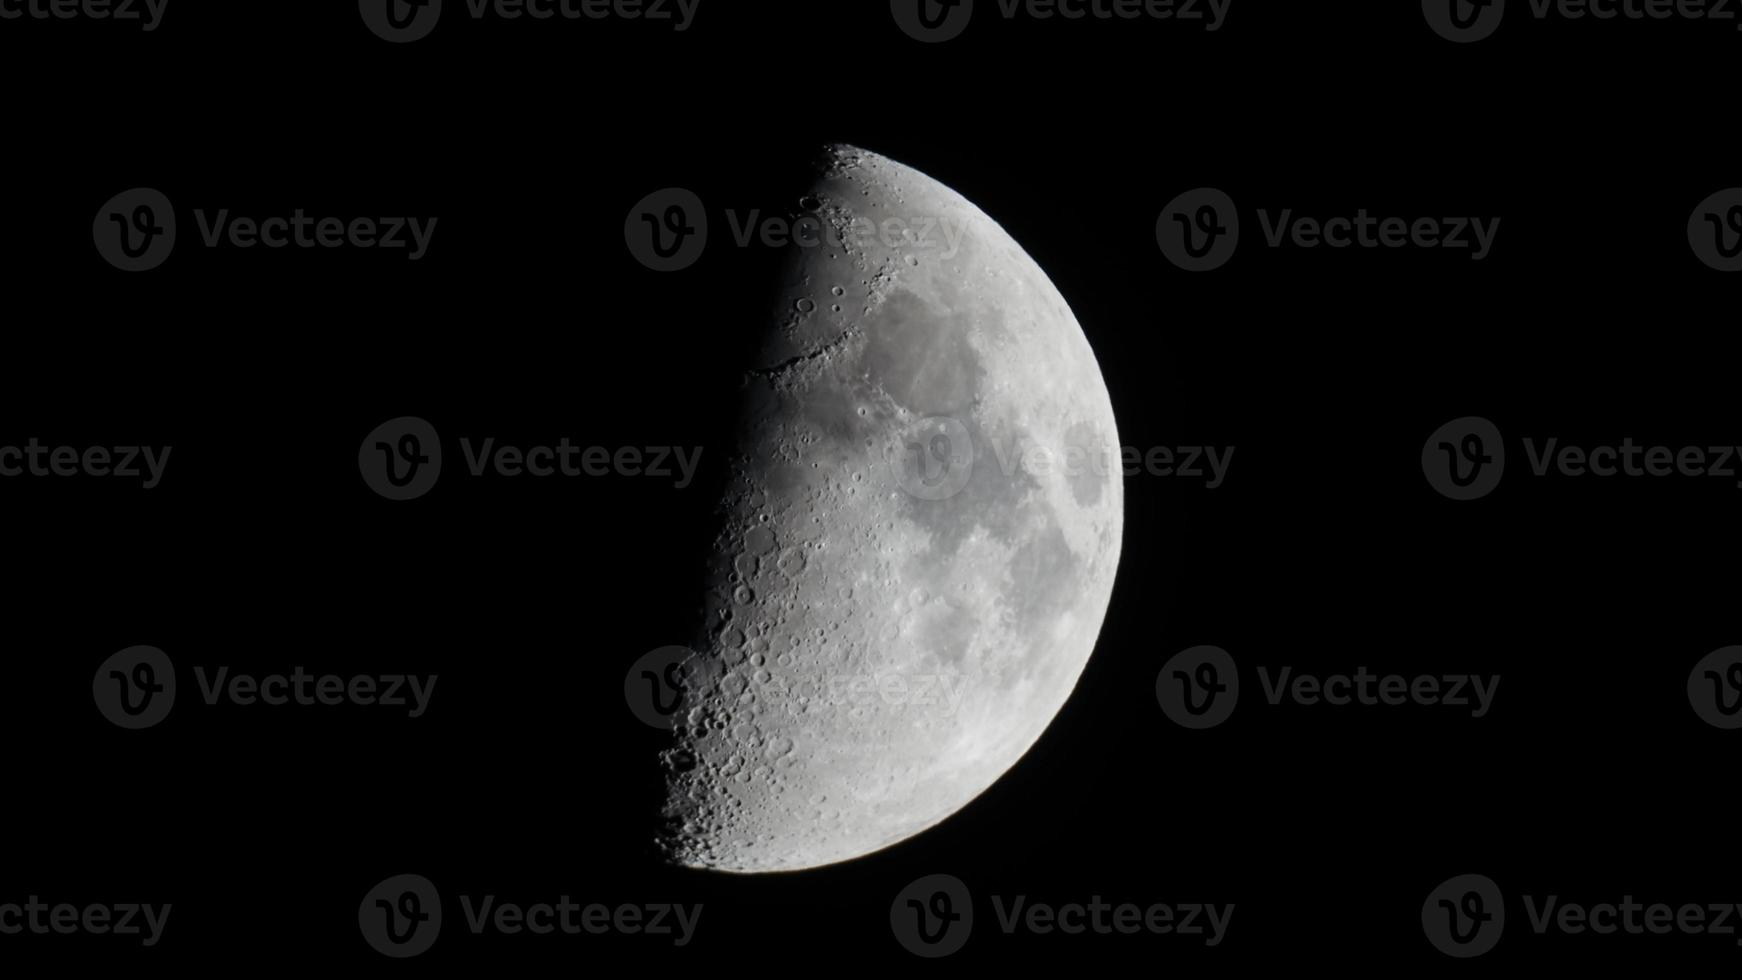 First quarter moon seen with telescope photo